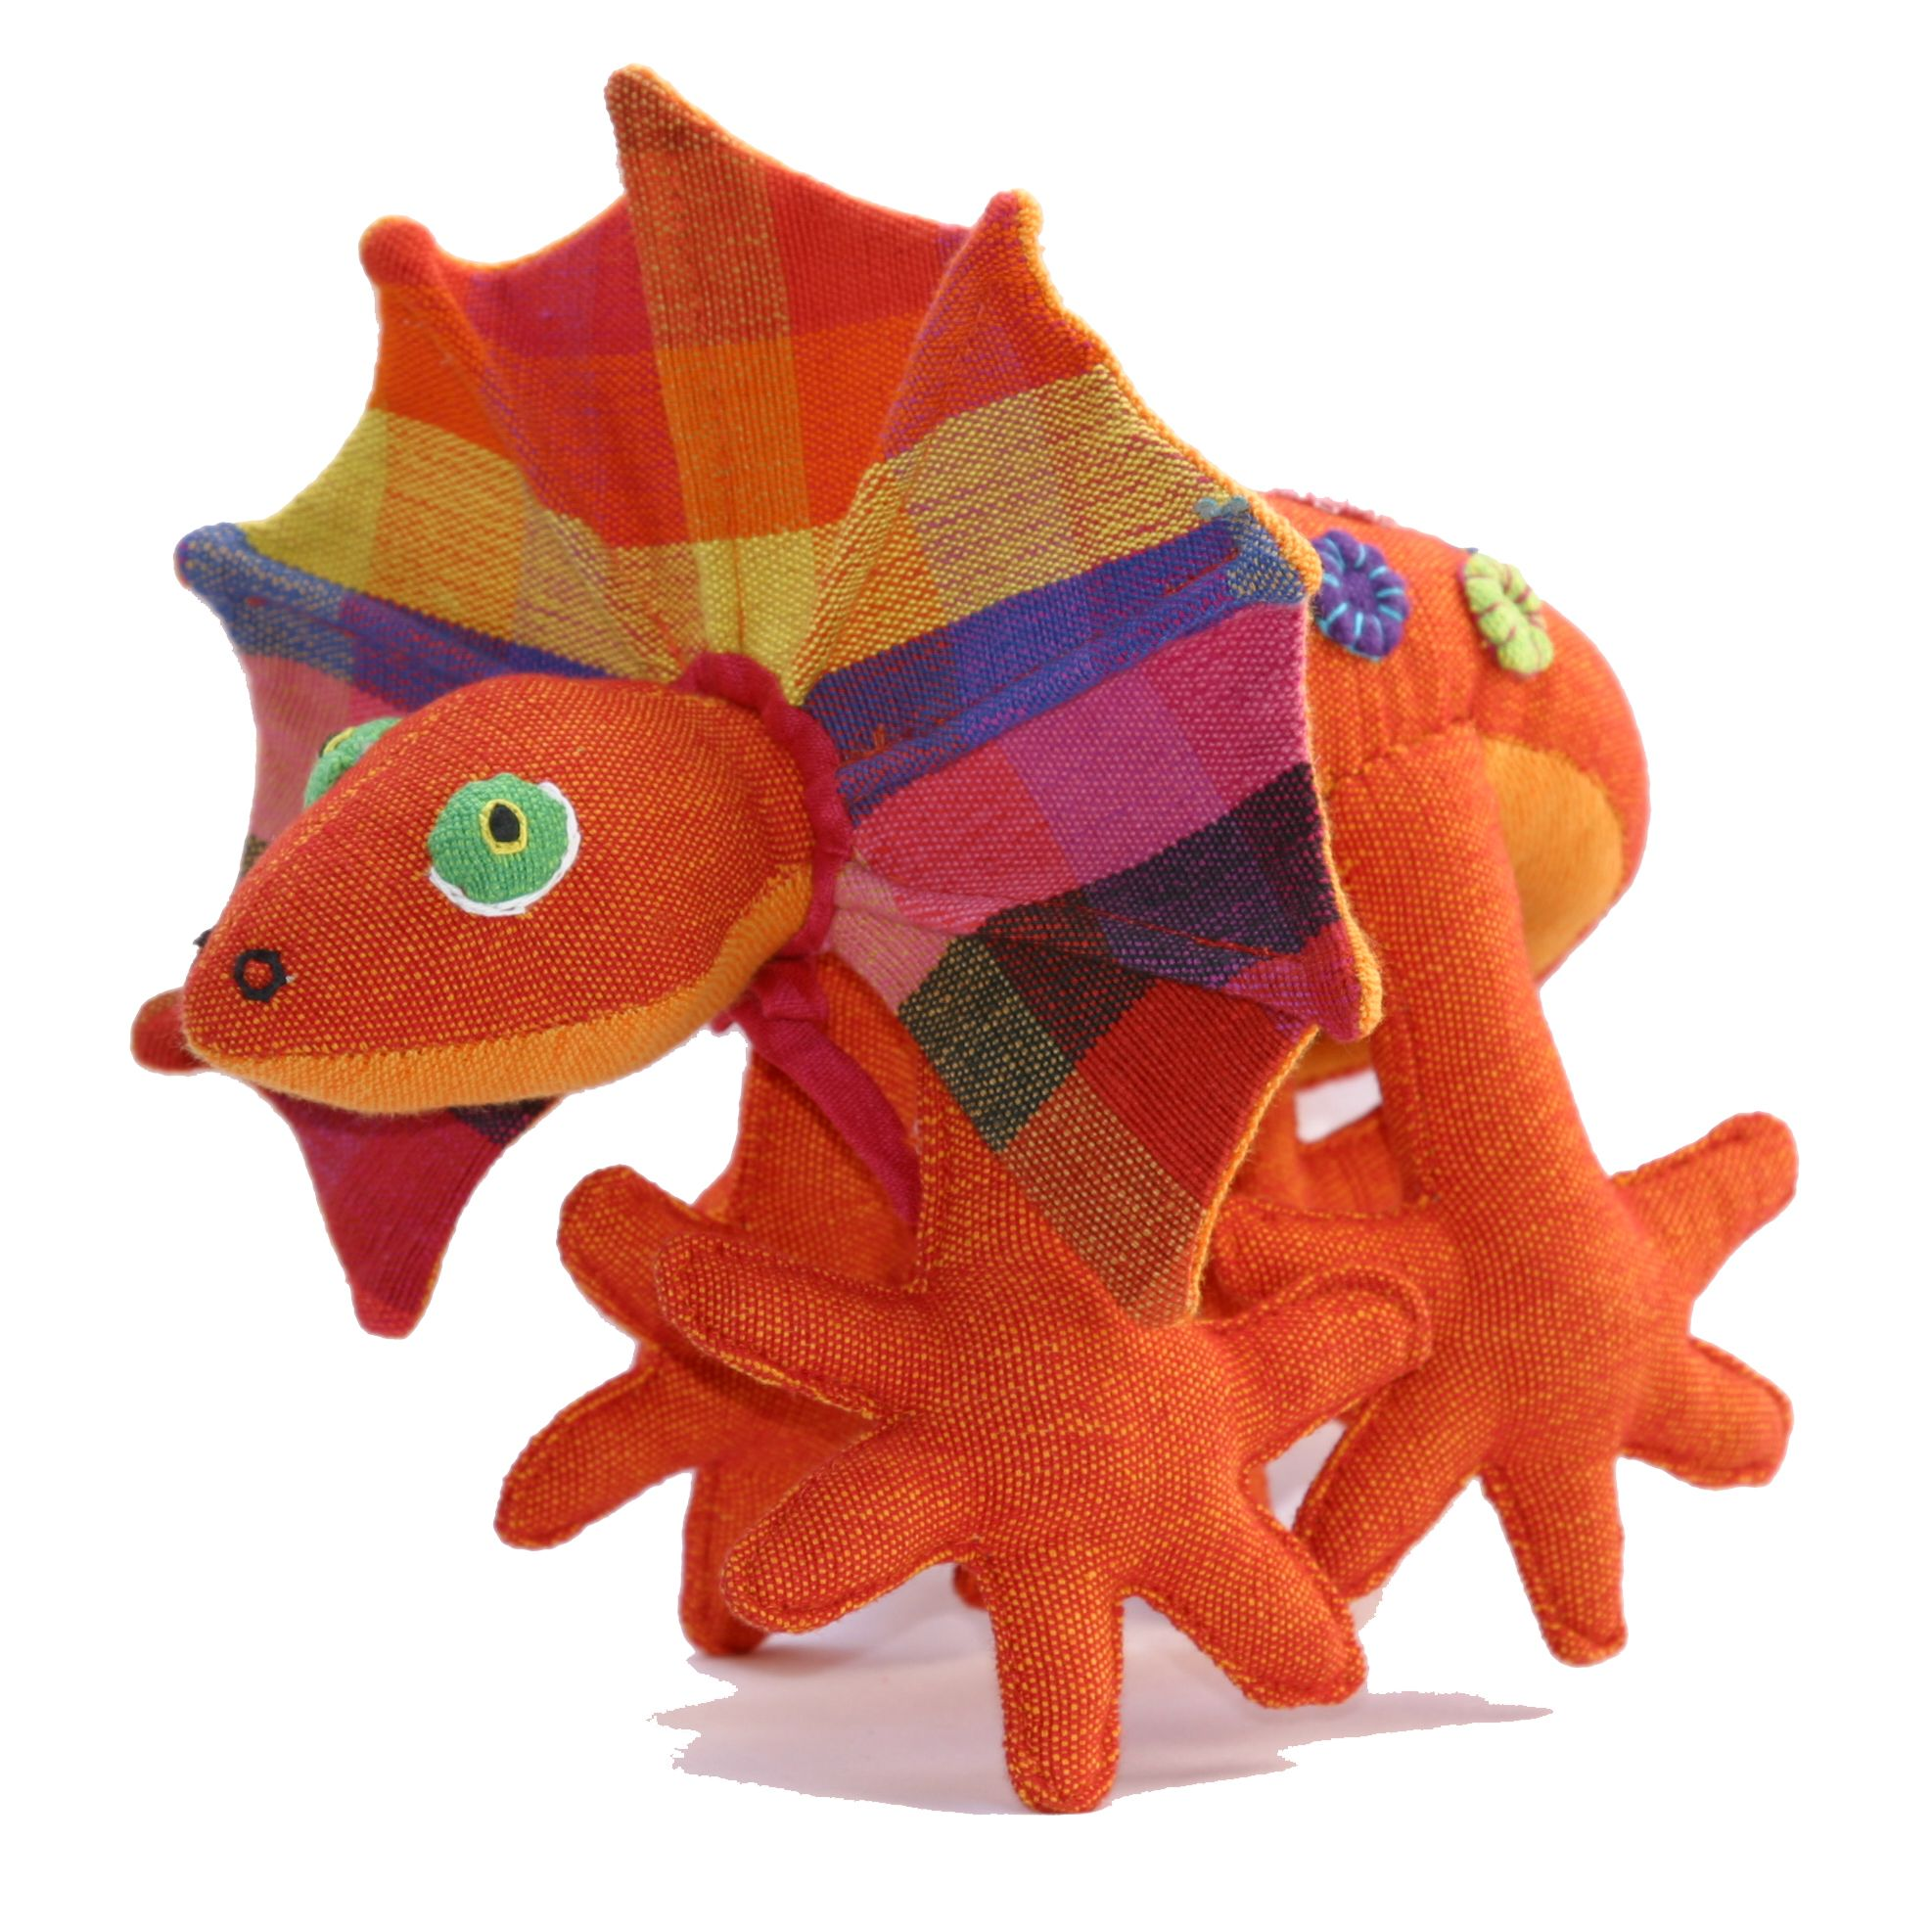 Frilled Neck Lizard | Animals, Dinosaur stuffed animal, Toys